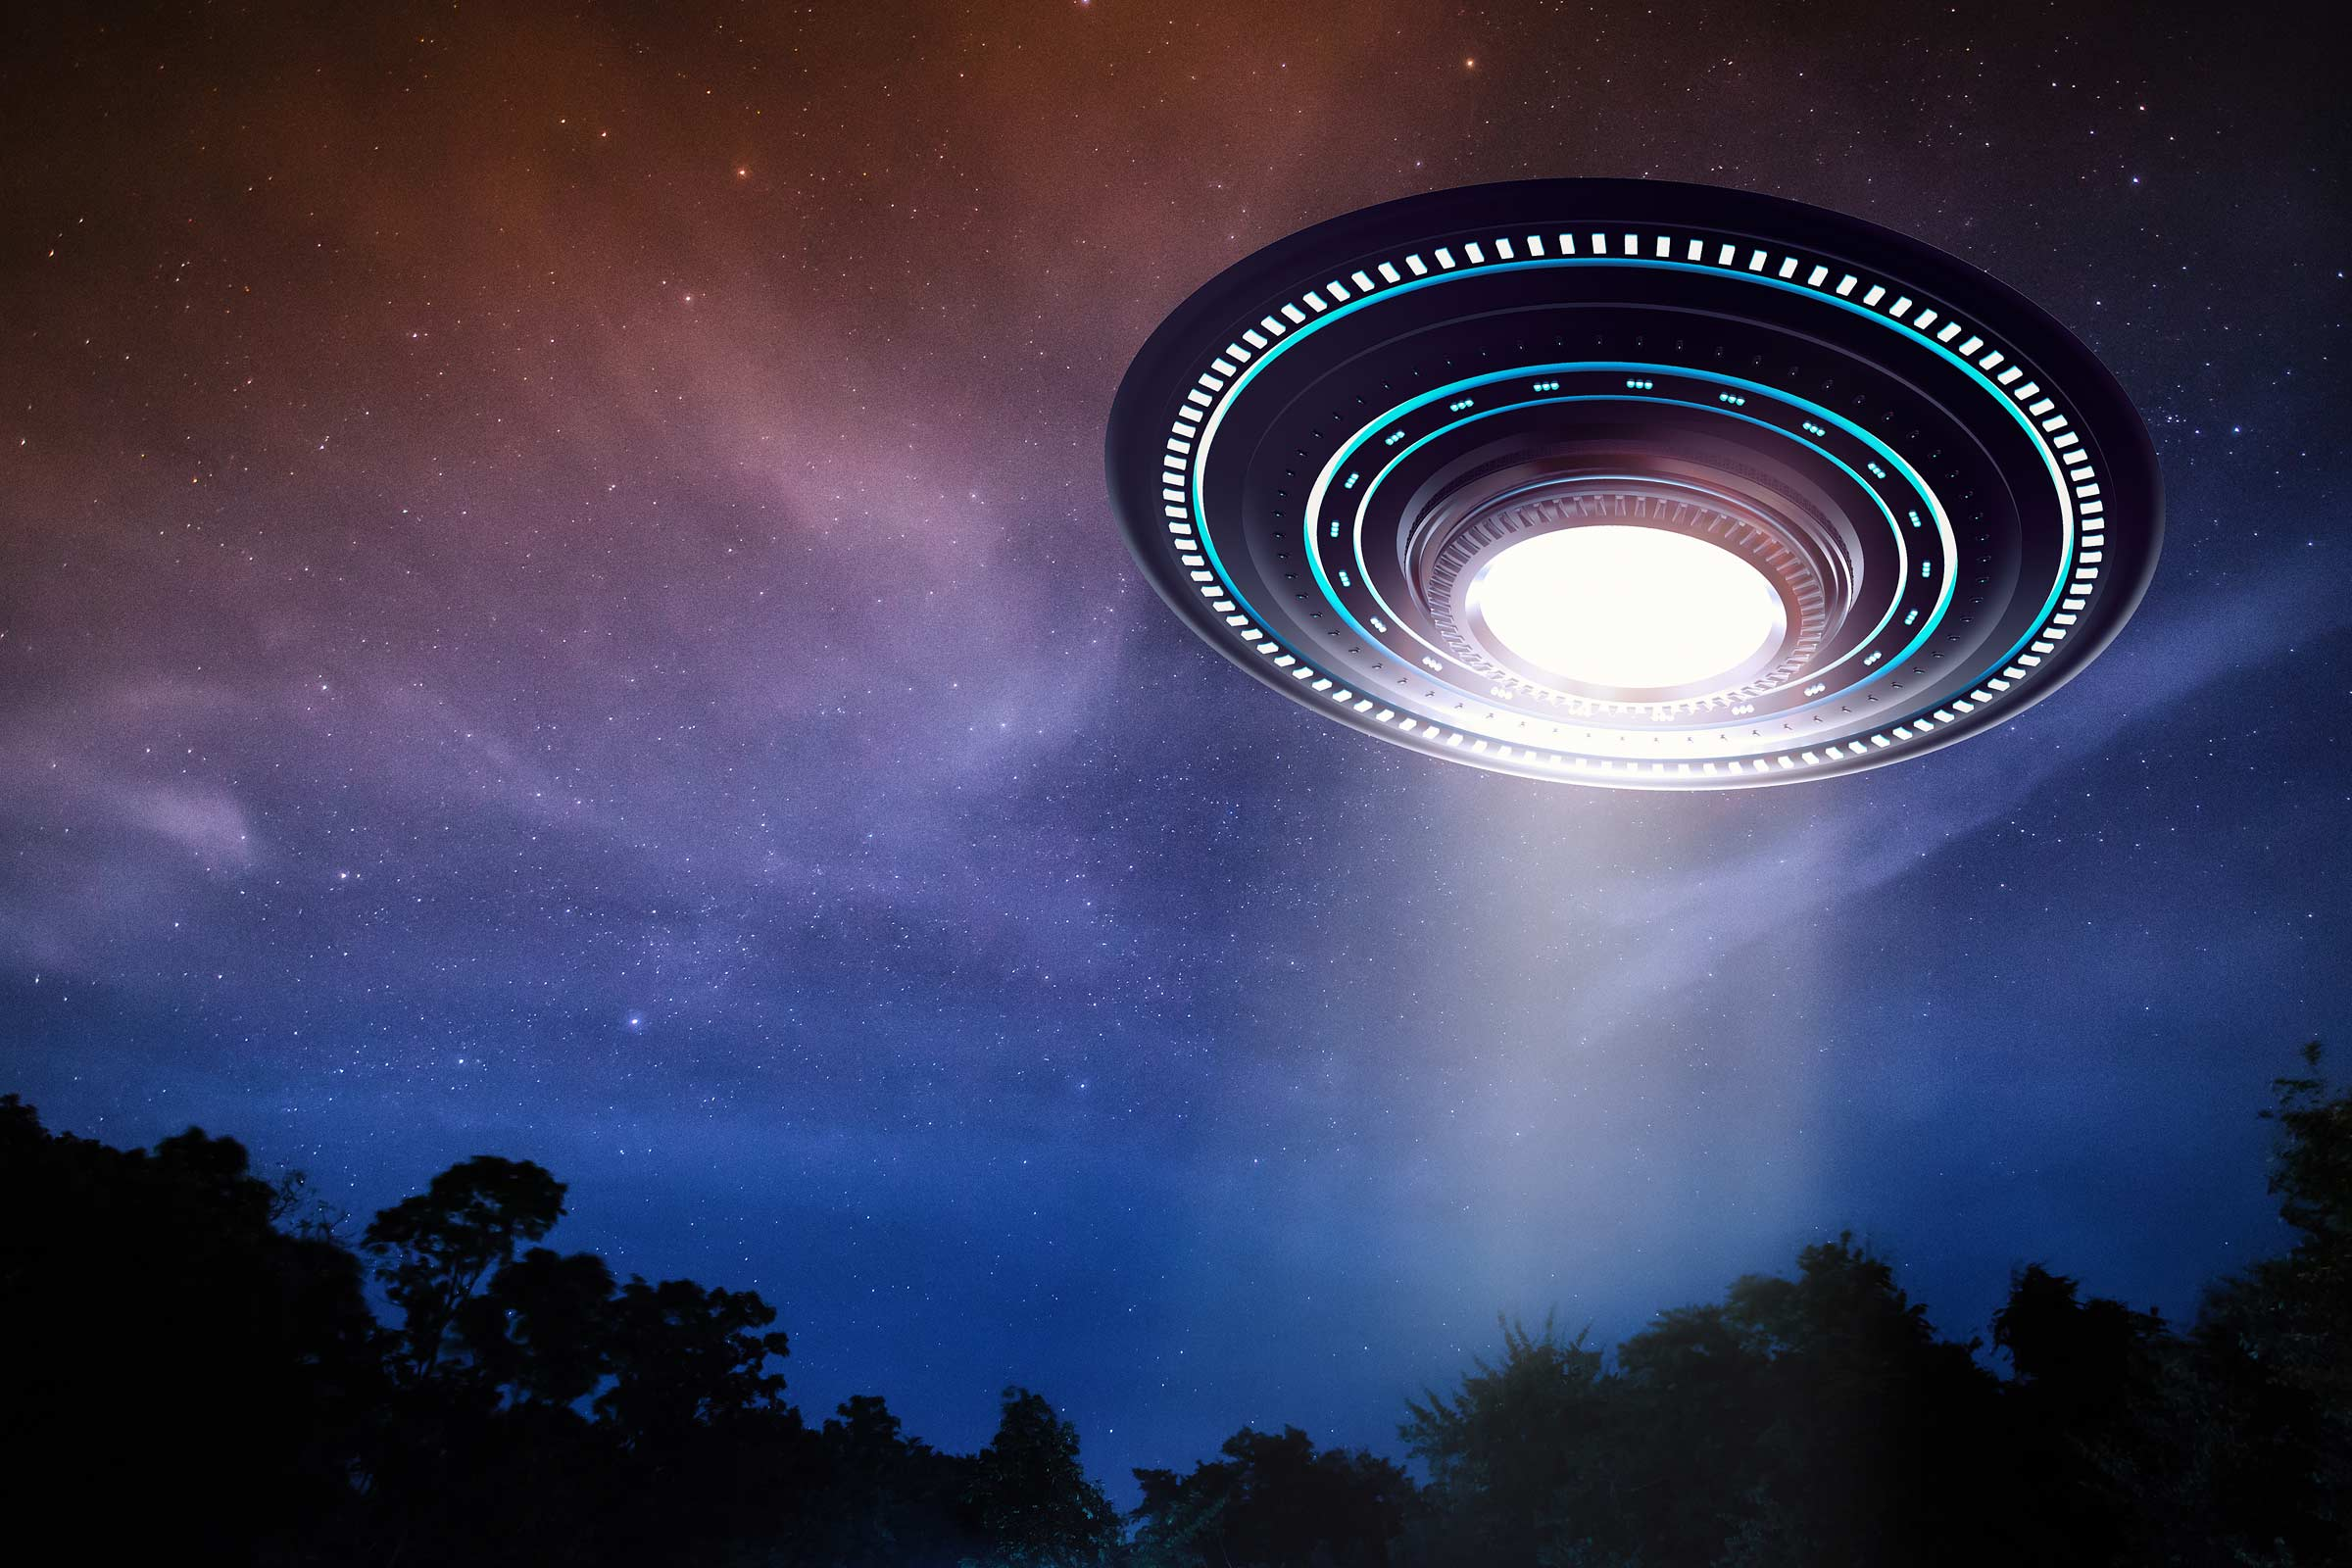 2 Pilots in Different Planes Saw the Same UFO. The FAA Can't Explain It